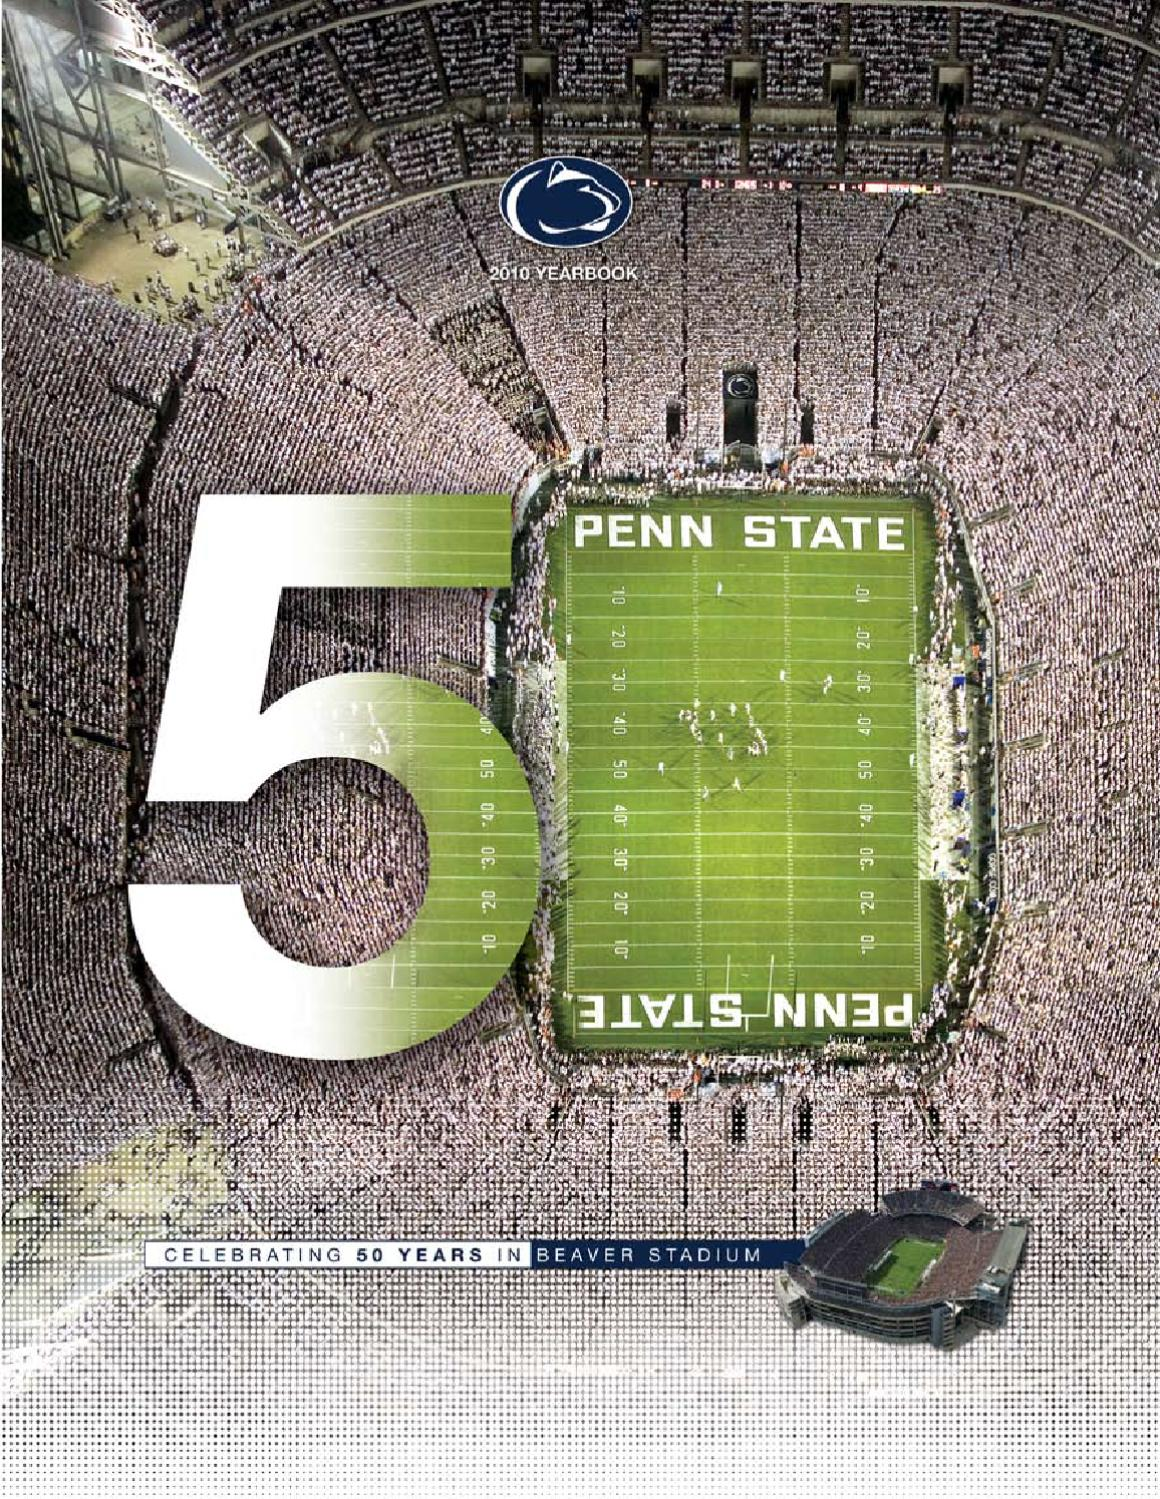 2014 Penn State Football Yearbook by Penn State Athletics - issuu